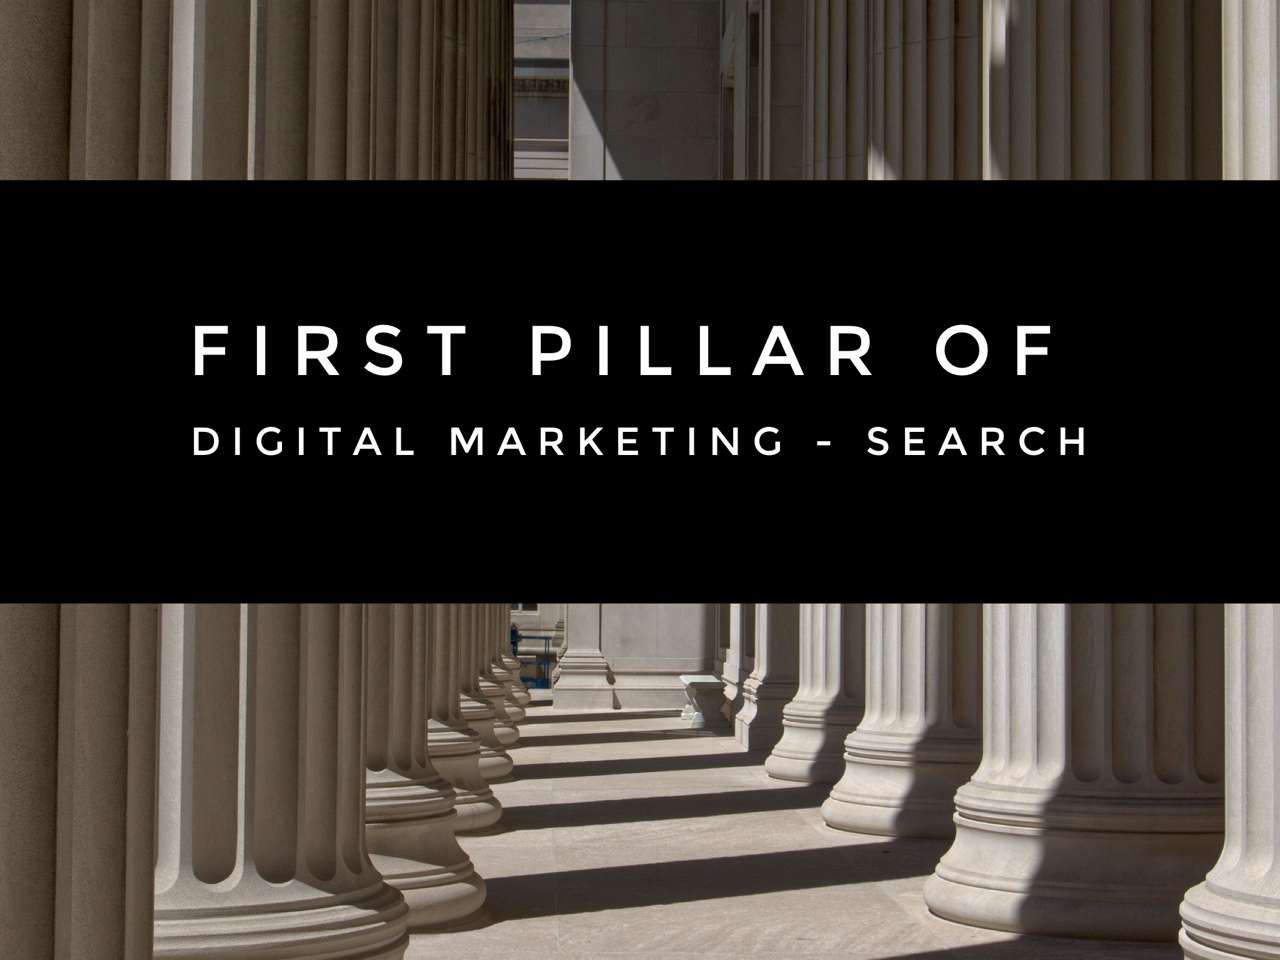 First Pillar of Digital Marketing - Search